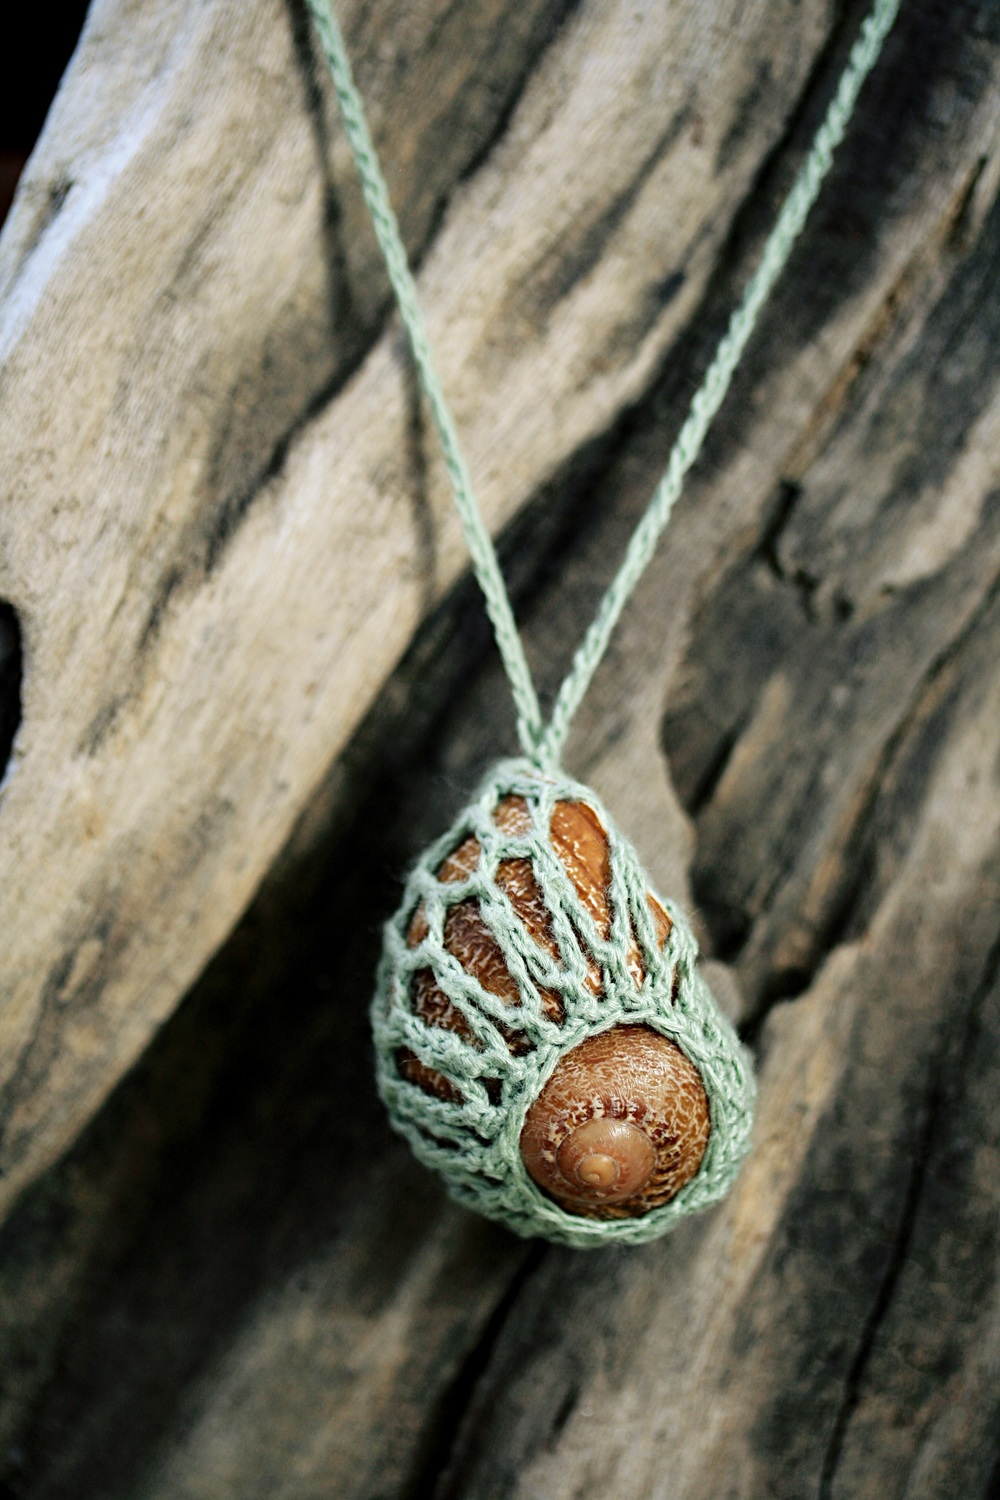 Crochet Necklace with Escargot Shell and Bamboo Thread, 2014.